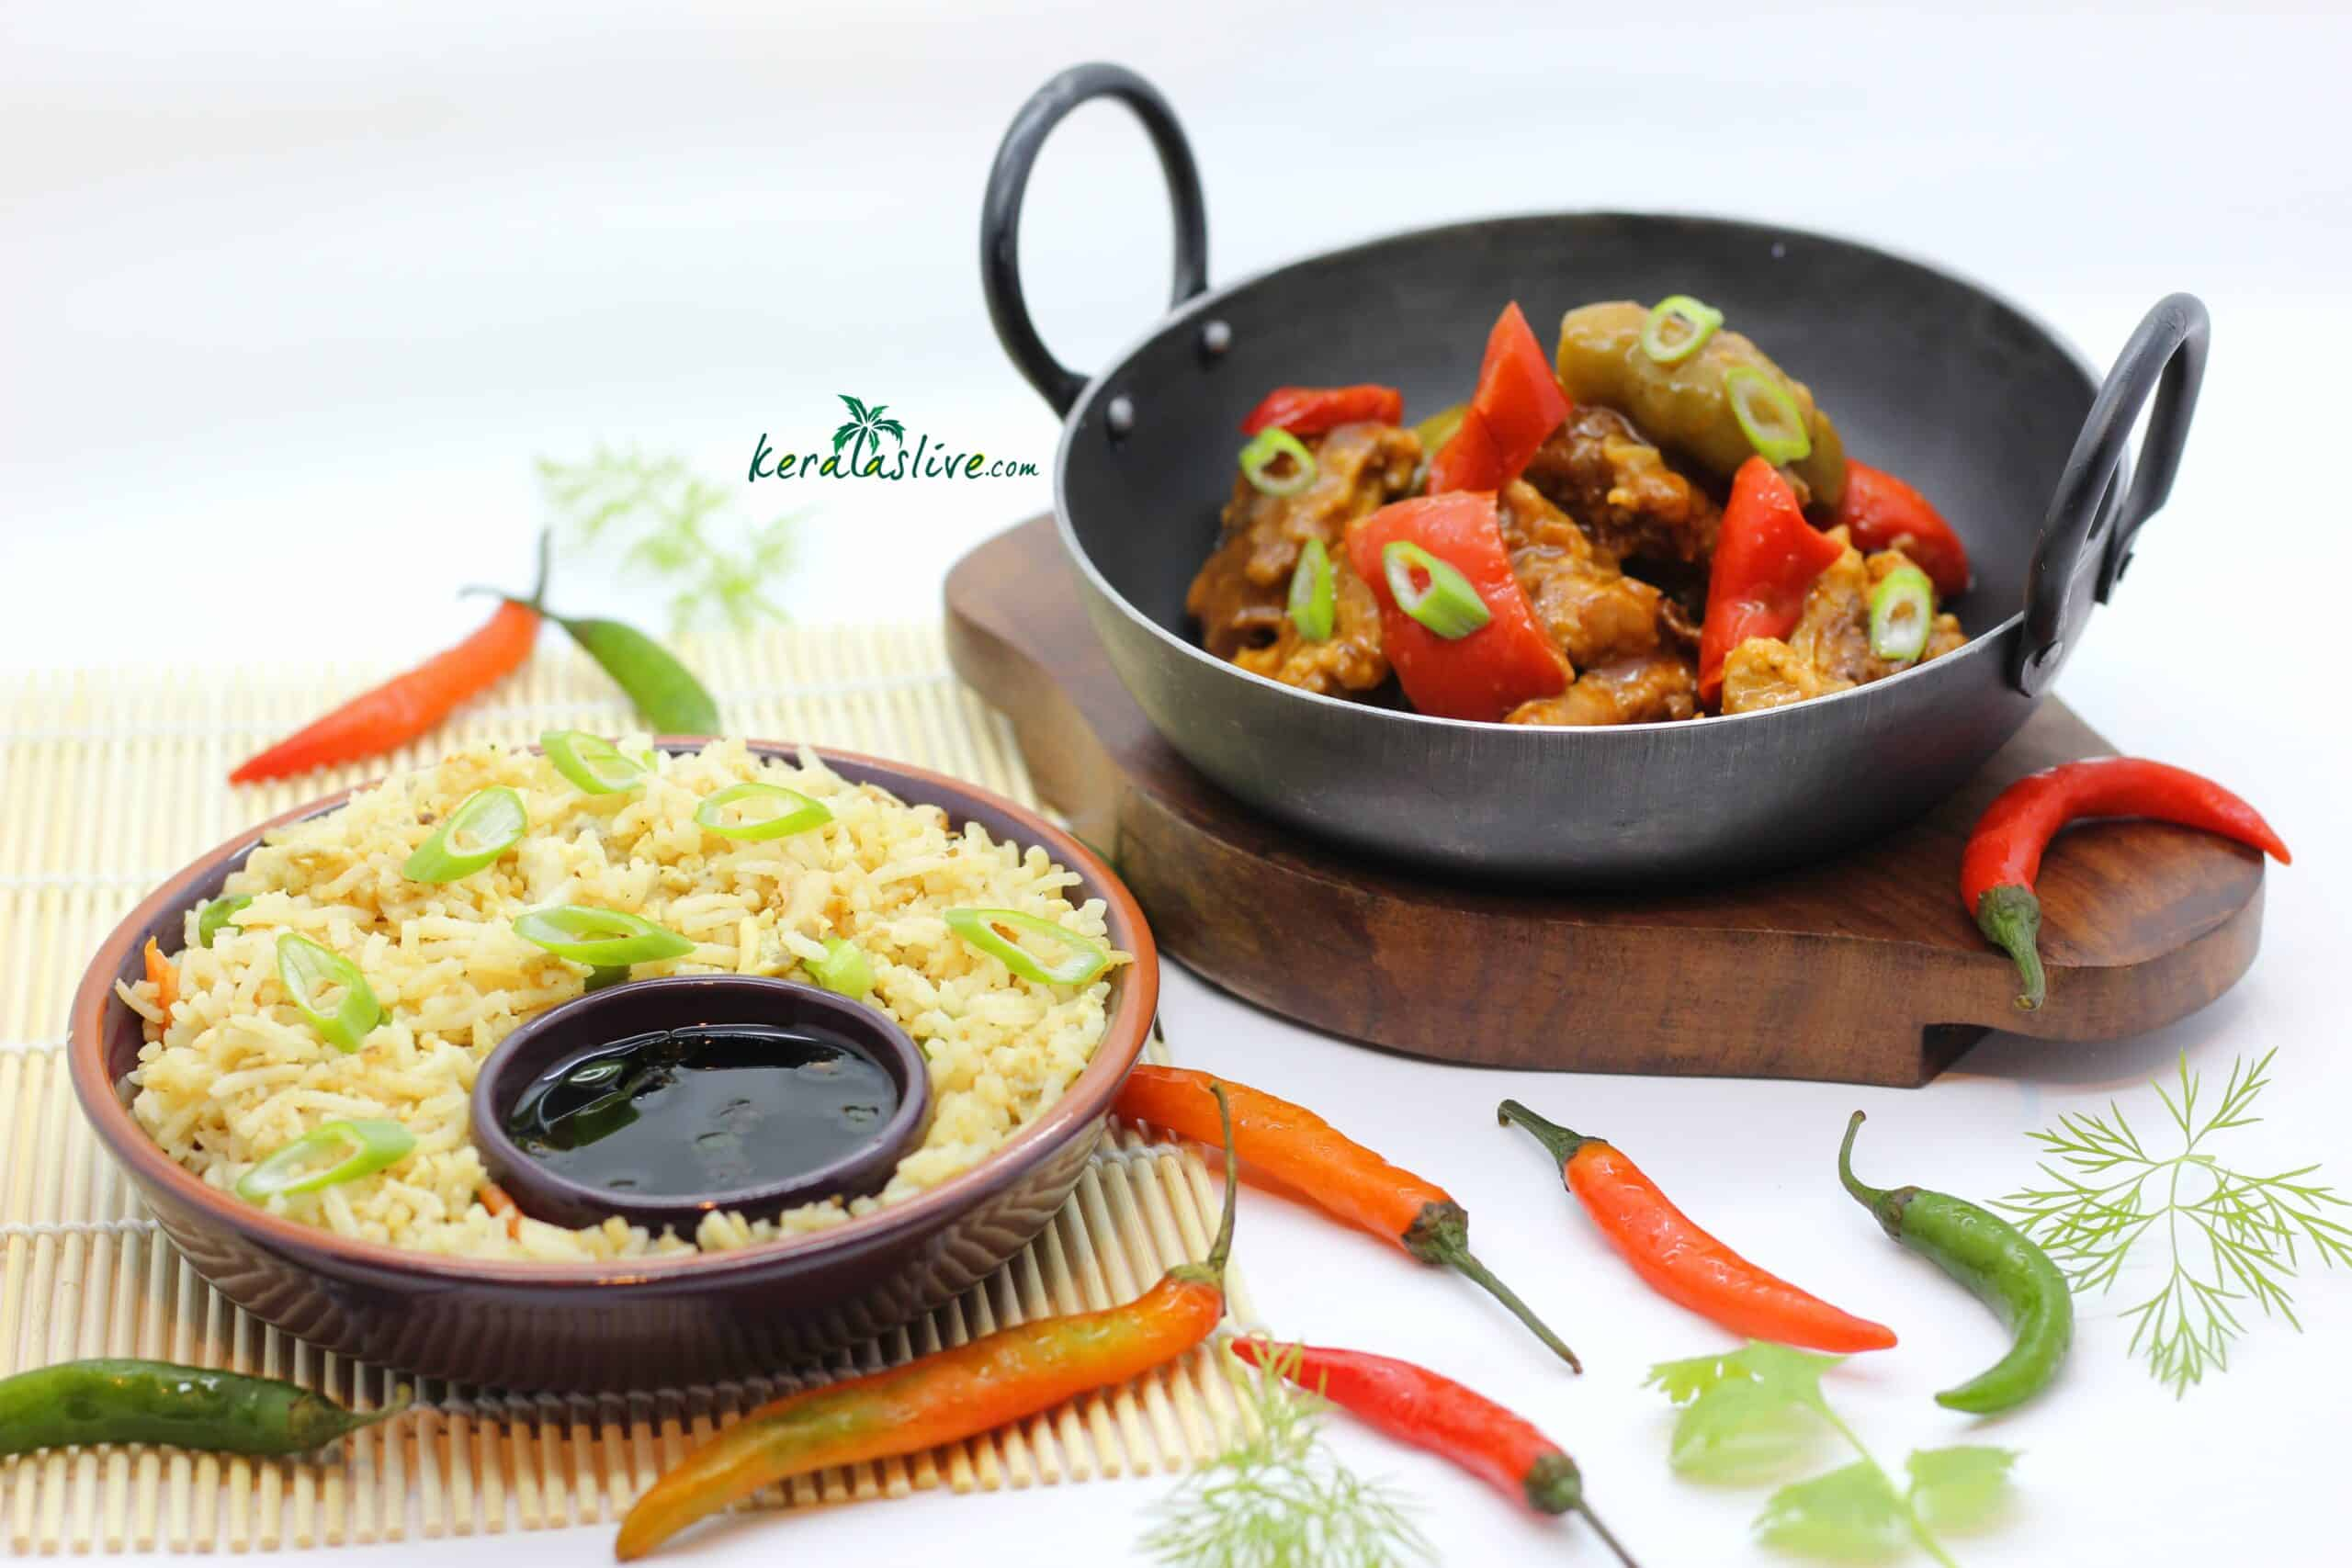 Chilli chicken is the most popular dish in Indo-Chinese cuisine as a starter or main course.